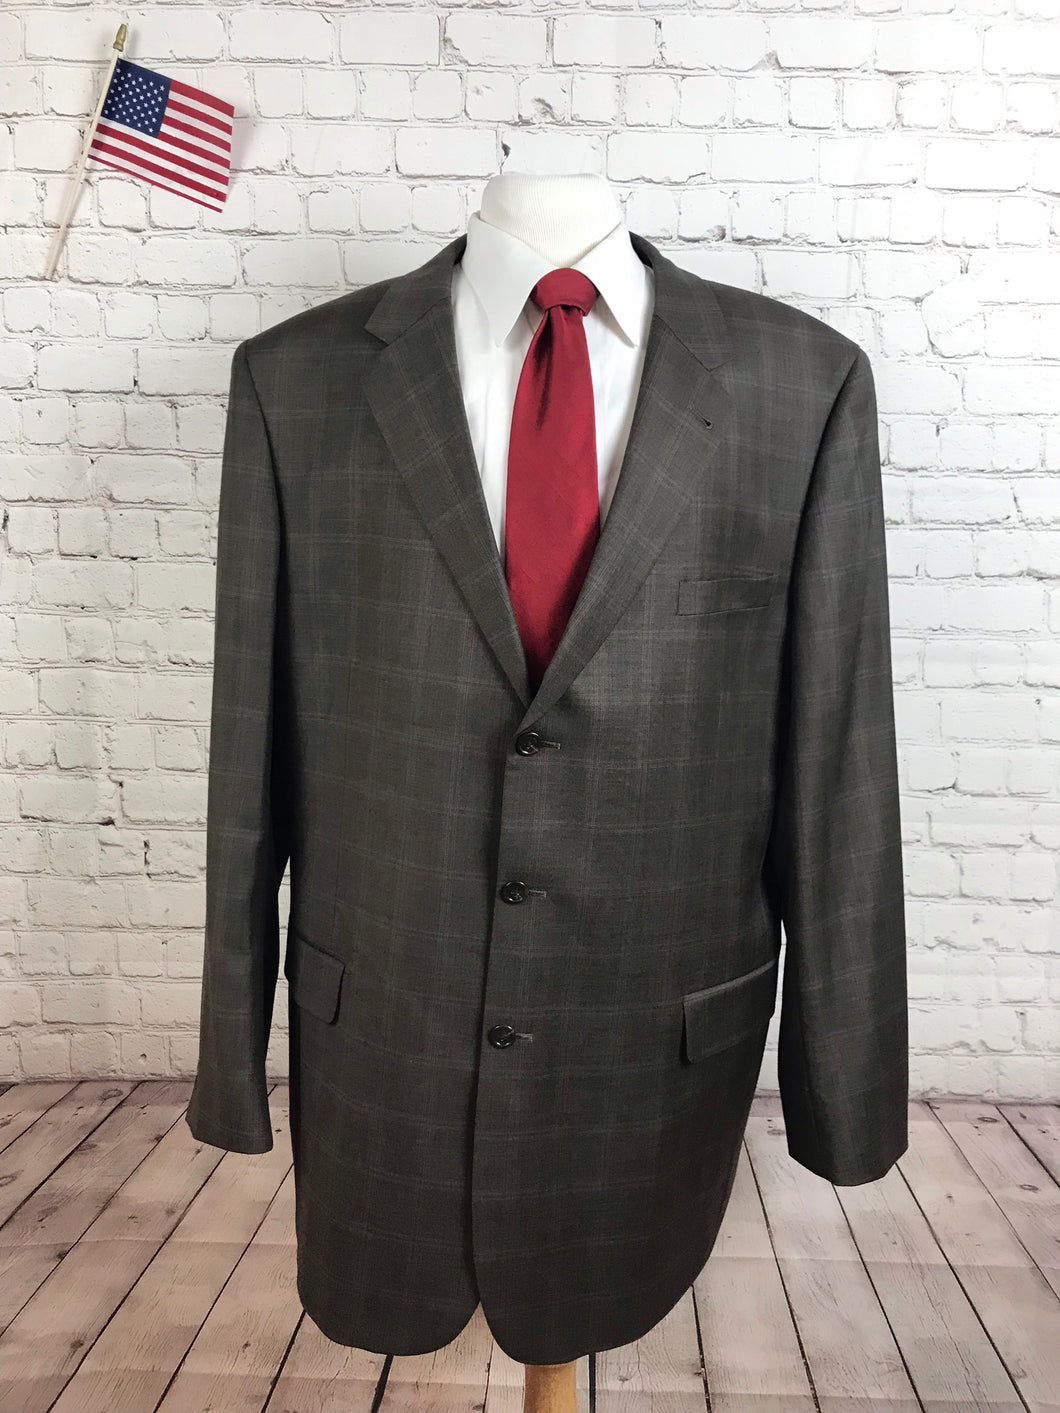 Jos. A. Bank Men's Brown Plaid Wool Suit 48R Pants 40X32 $795 - SUIT CHARITY OUTLET